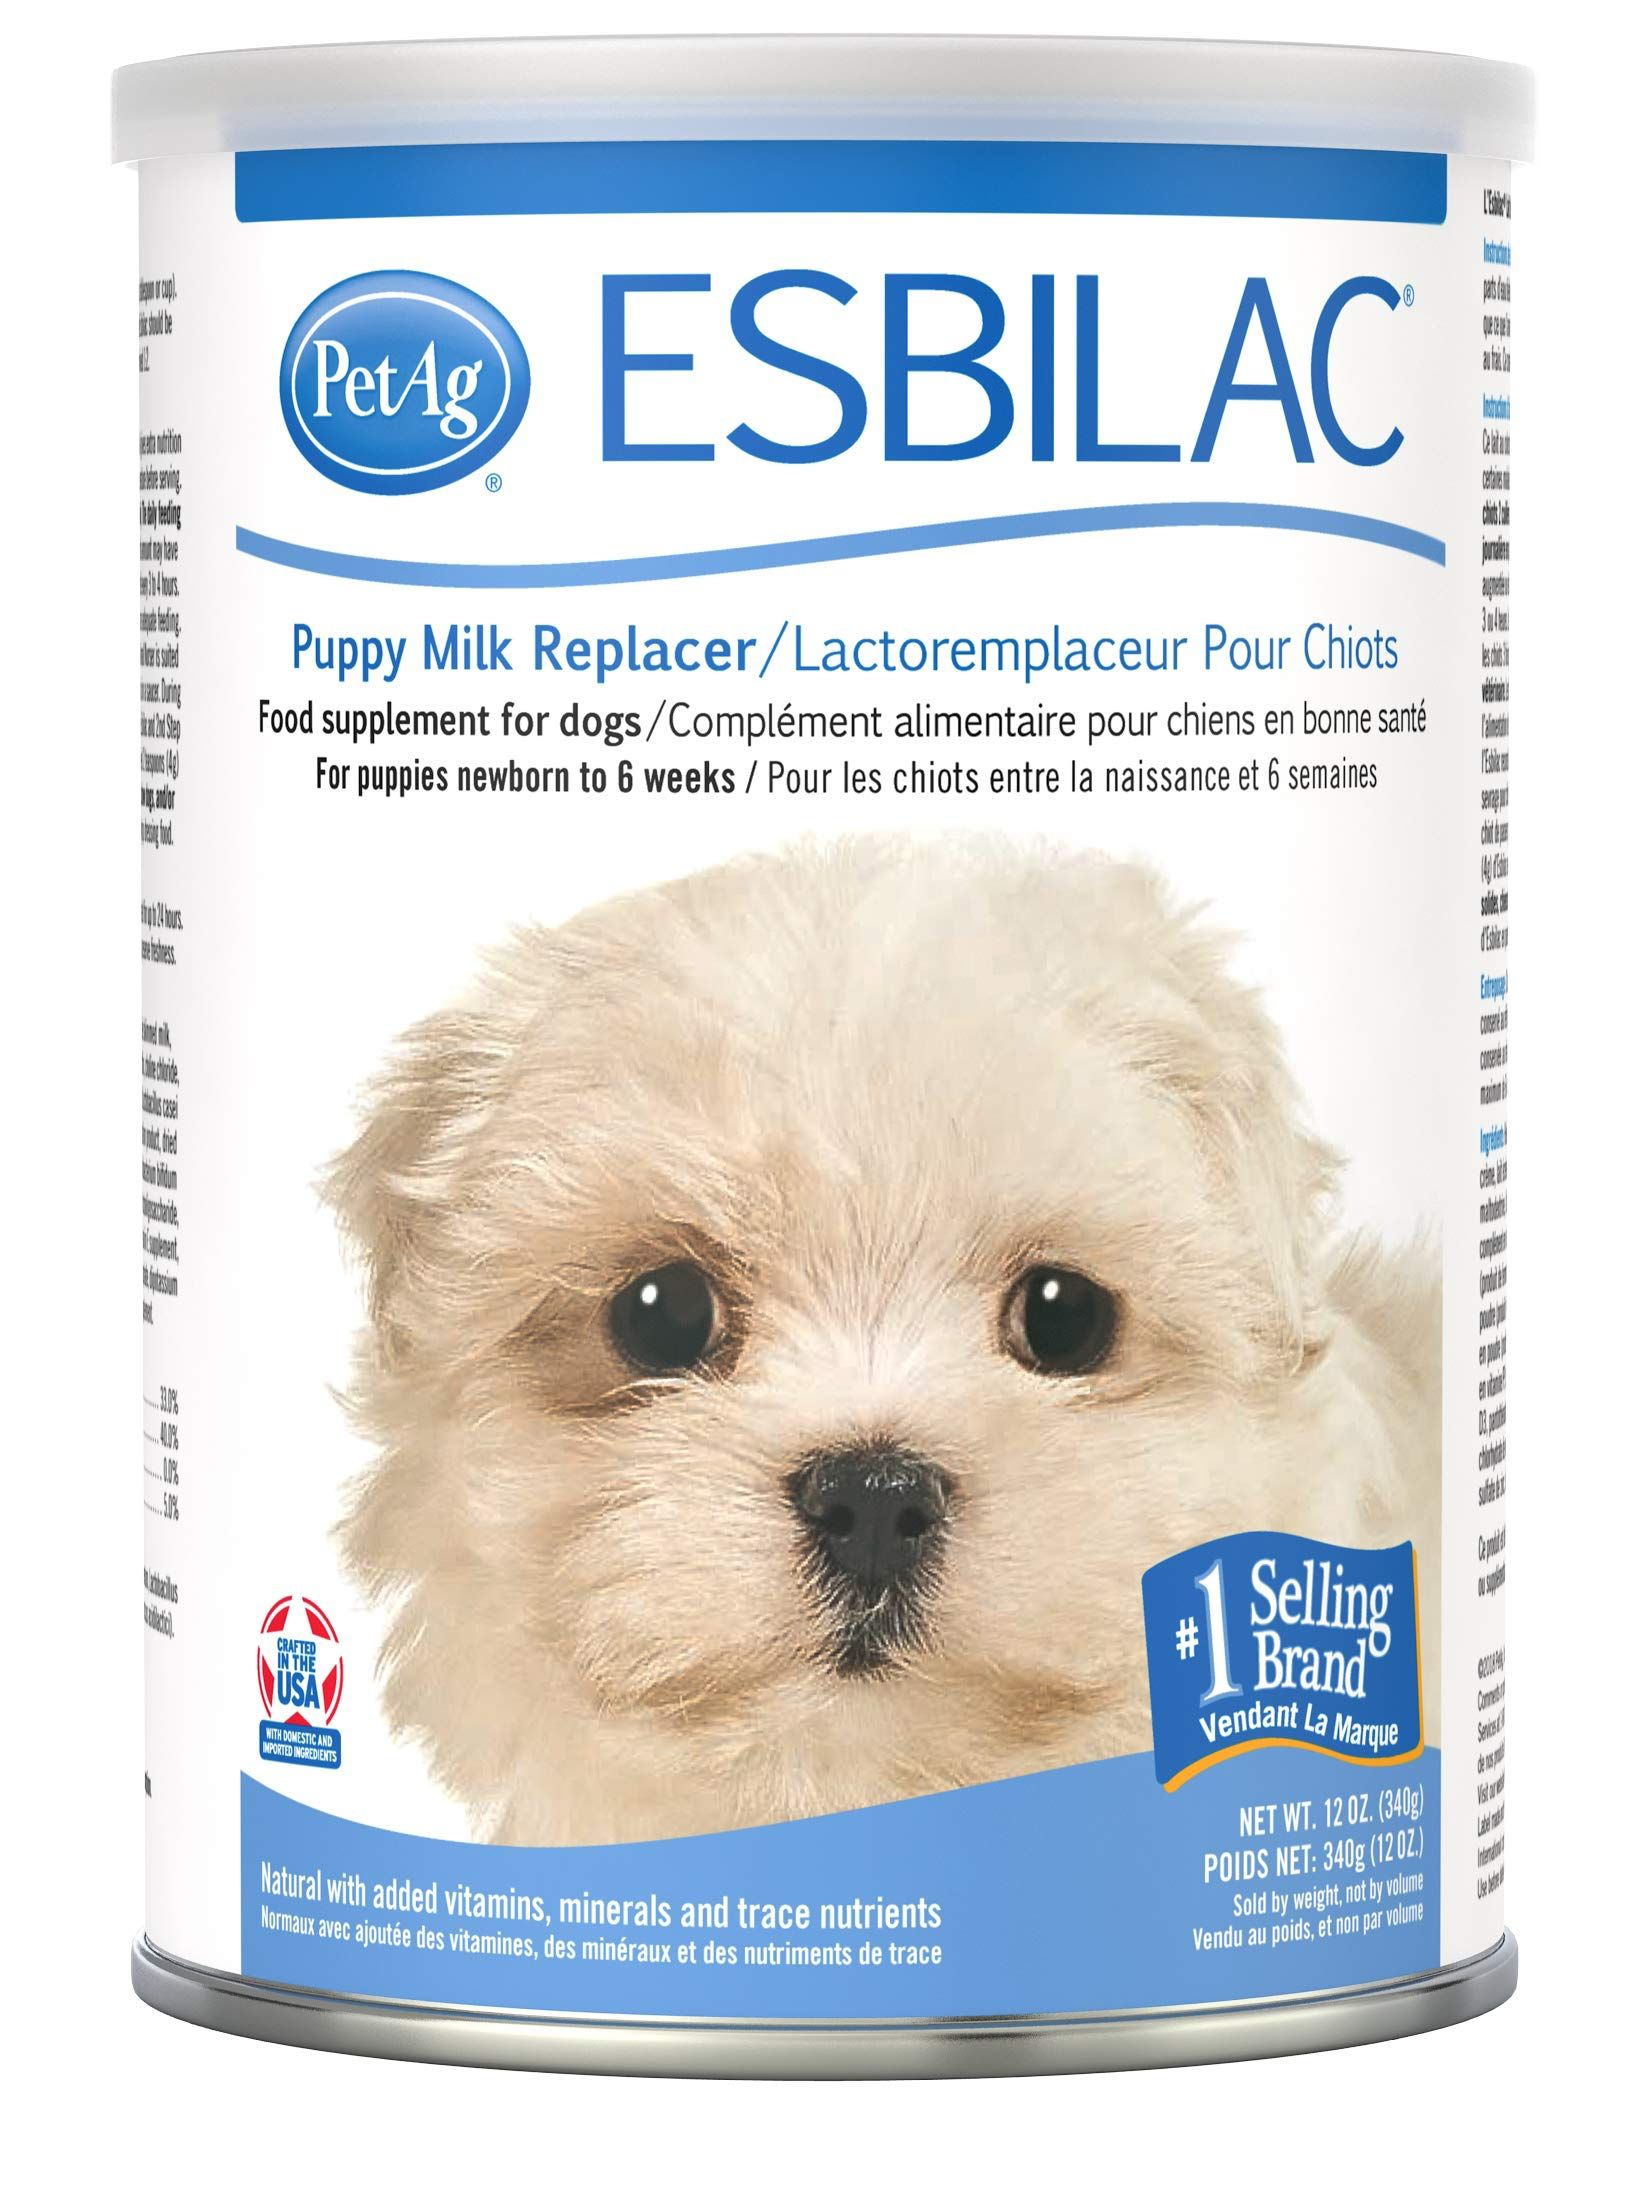 Petag Esbilac Puppy Milk Replacer You Can Find More Details By Visiting The Image Link As An Amazon Associate I Earn F In 2020 Dog Diapers Pet Supplements Puppies